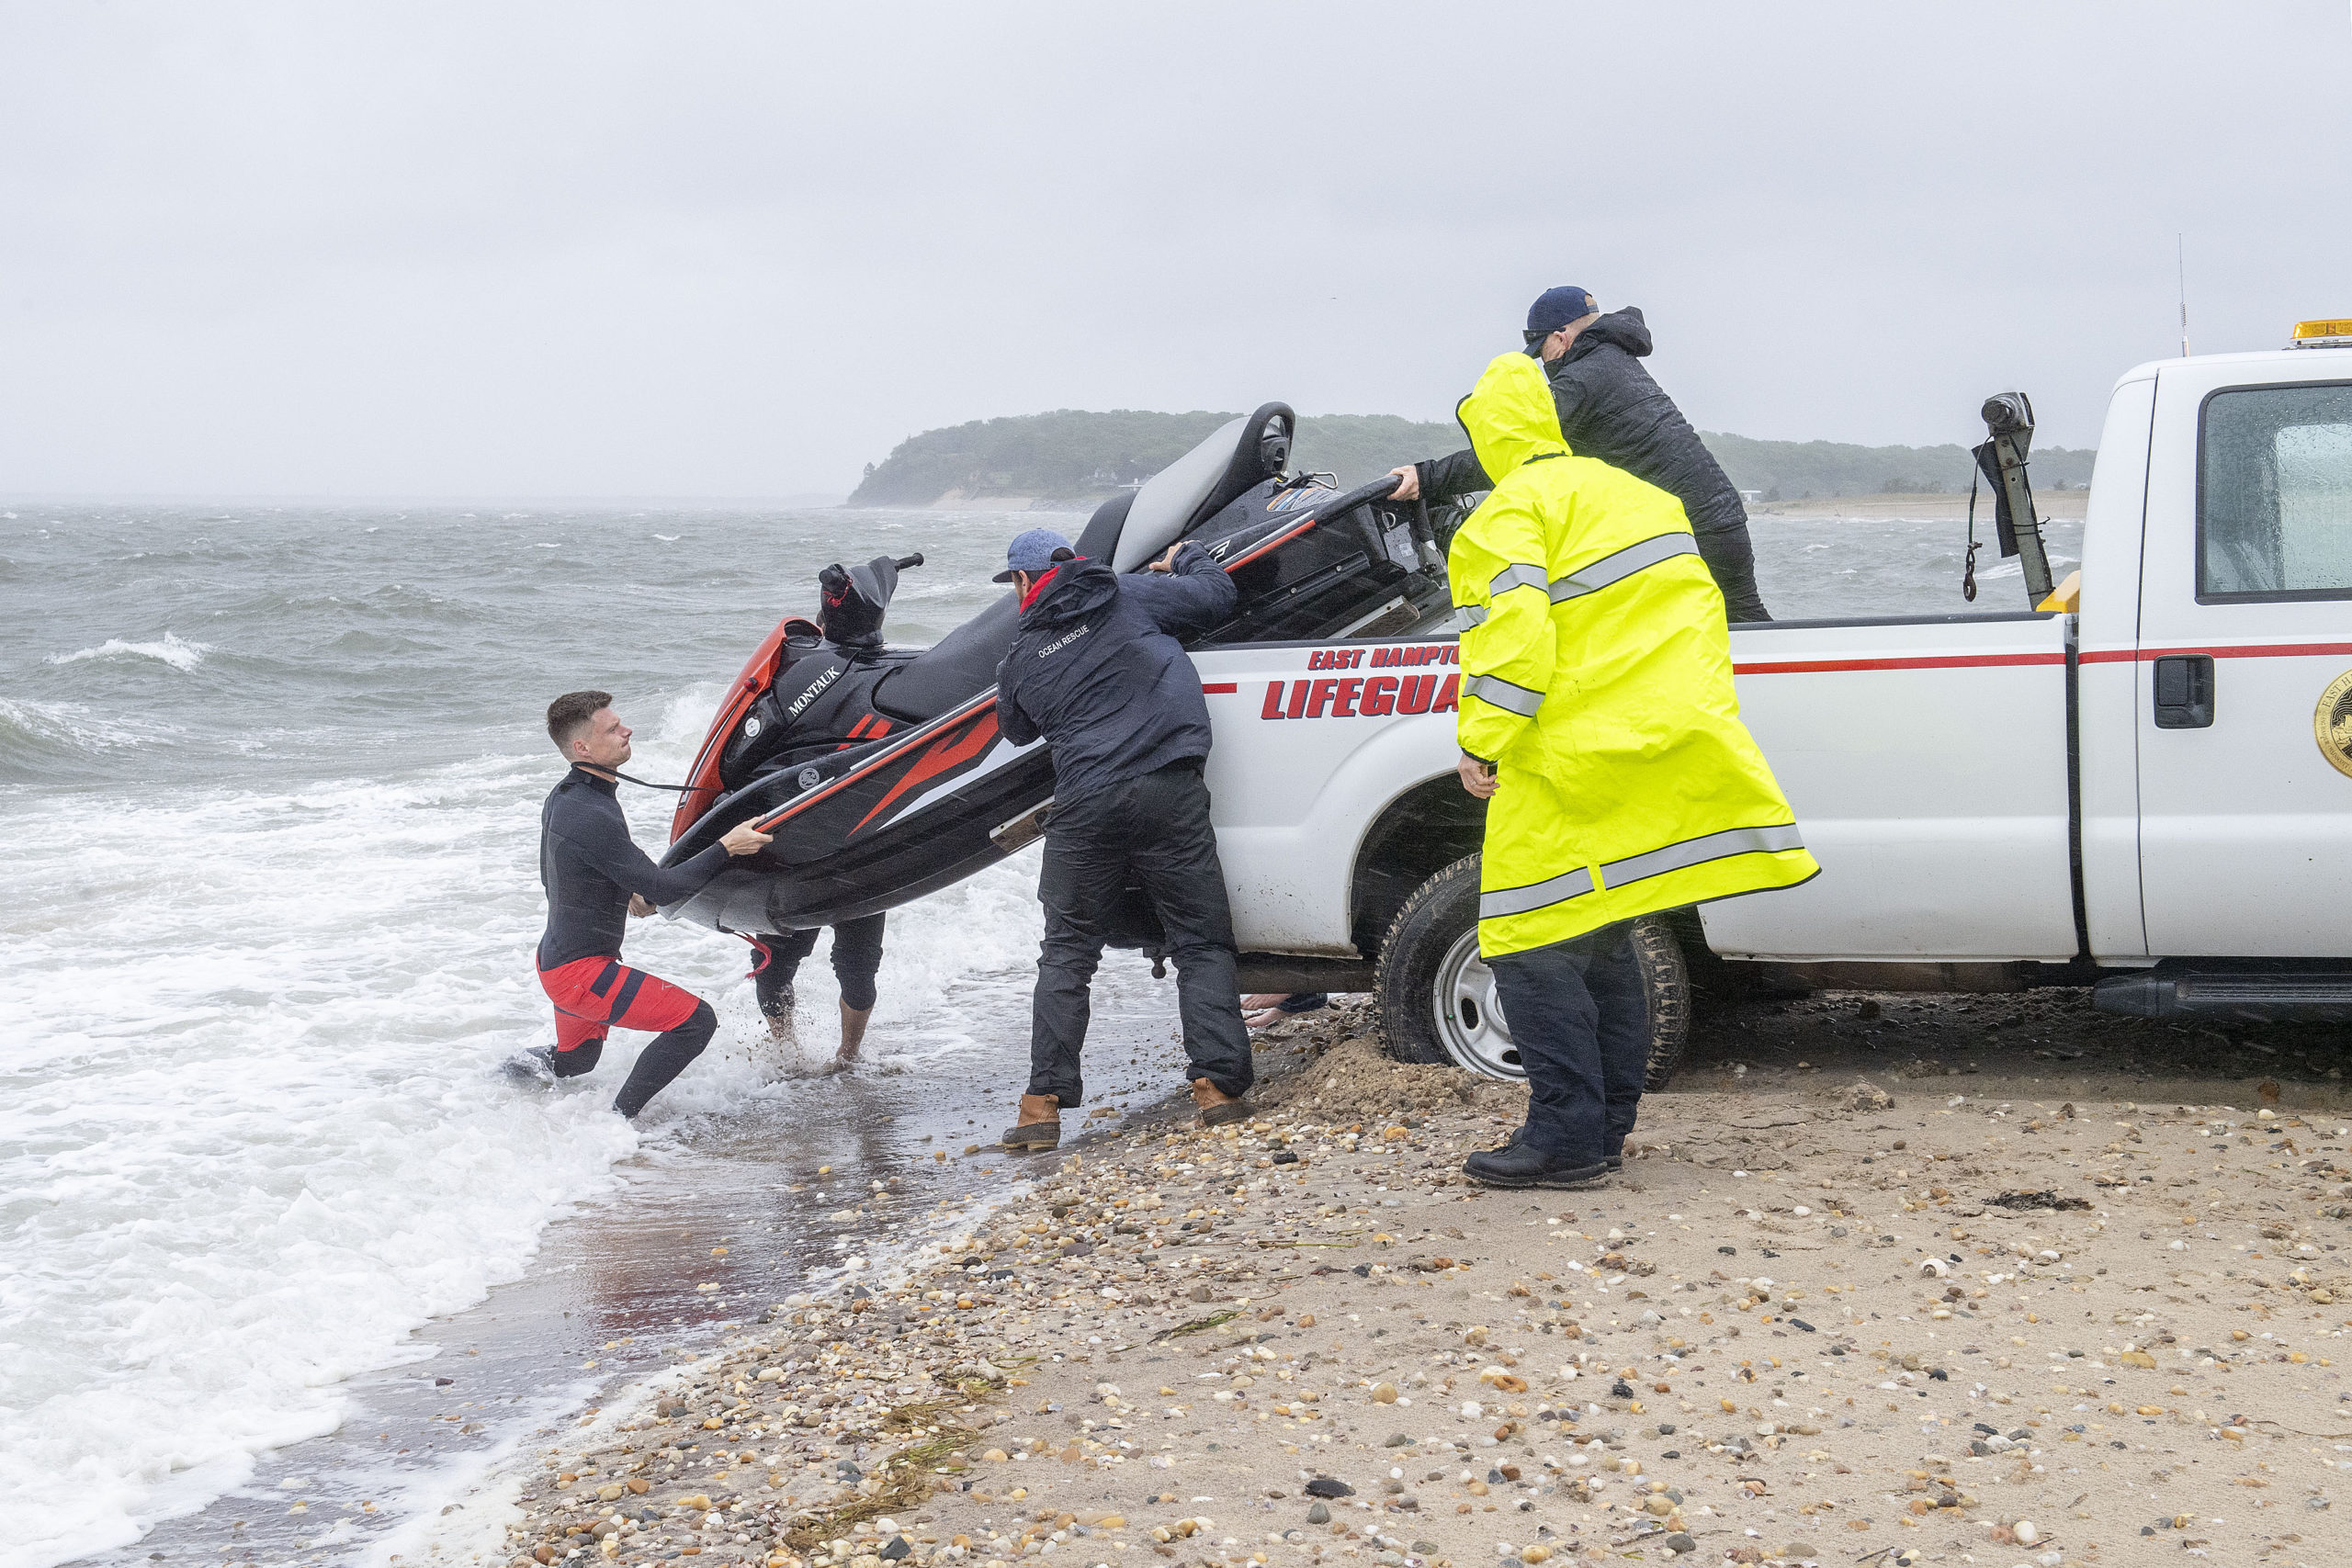 Members of the East Hampton Ocean Rescue Team used a jetski and sled to help with rescuing two kiteboarders who were caught out in the gale-force winds and rough waters east of Gerard Drive in Springs.